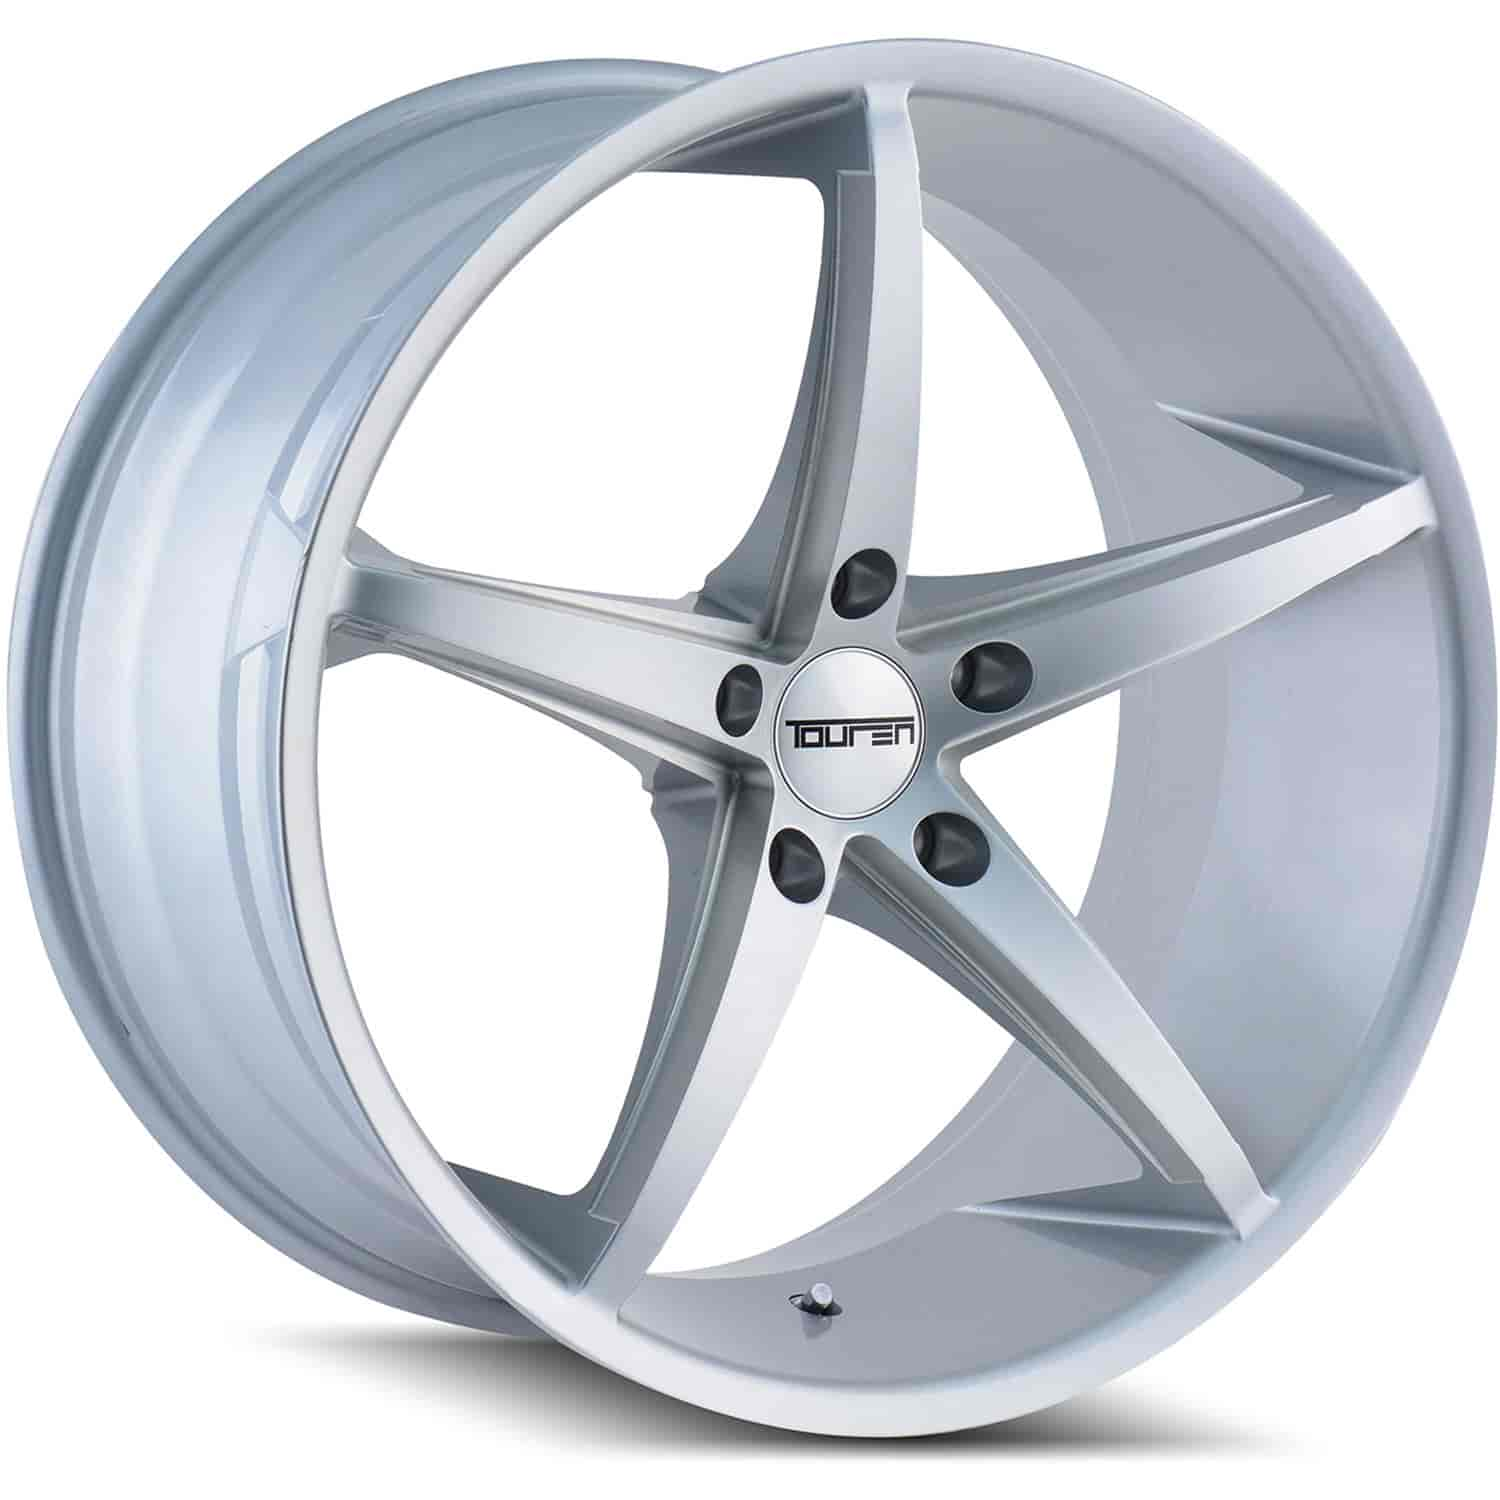 The Wheel Group 3270-2865S35